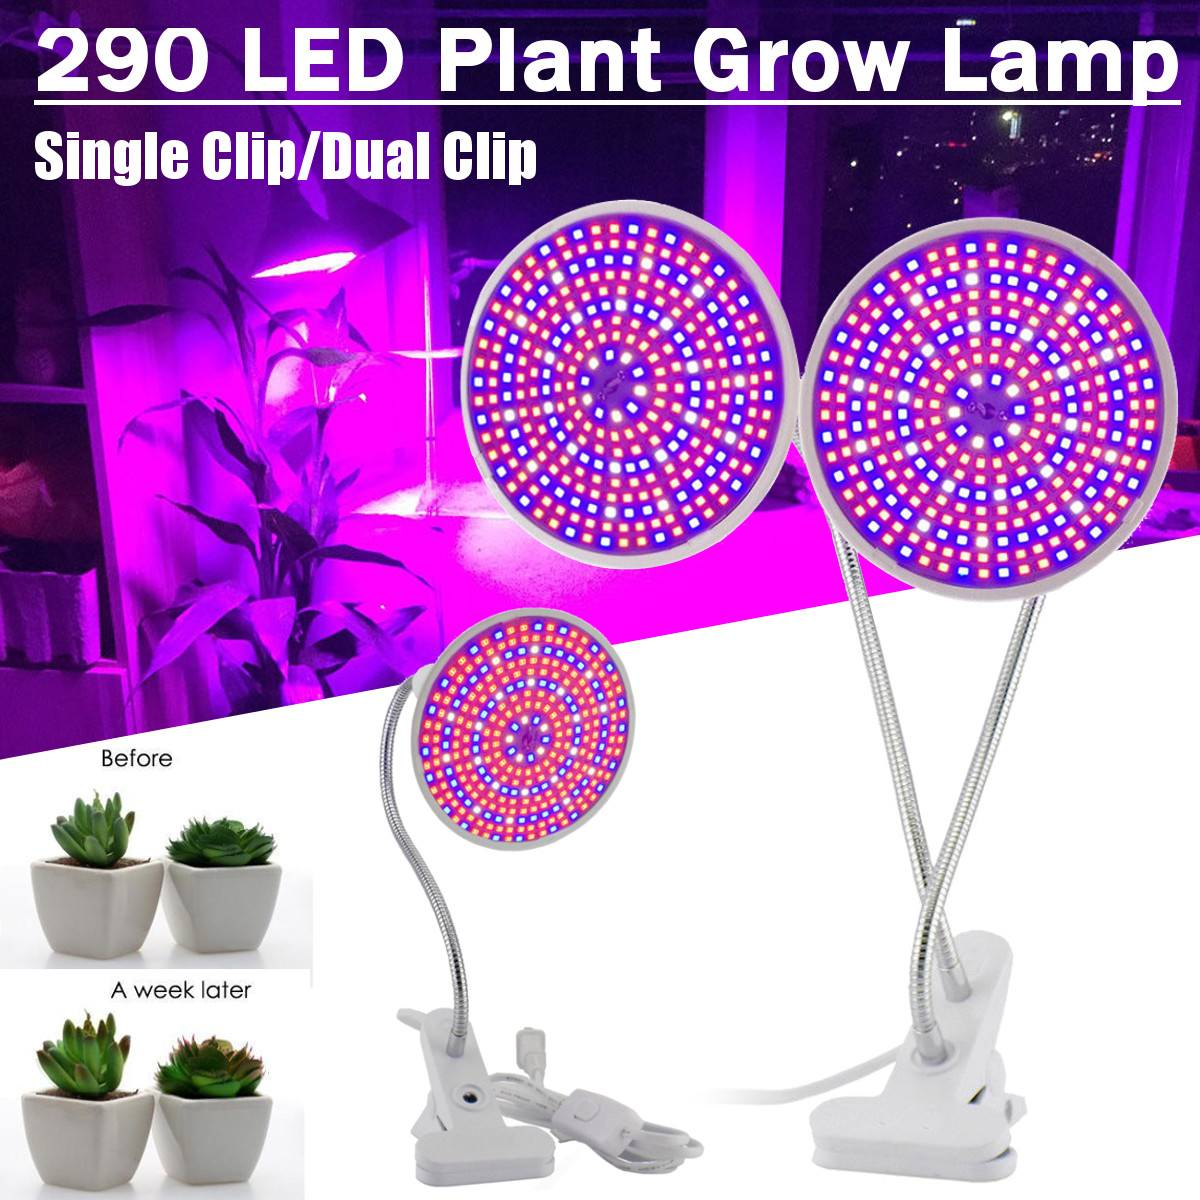 290 LED Plant Grow Light Hydroponic Lighting Clip Plants Lamp For Flower Hydroponics System Indoor Garden Greenhouse Seeding New